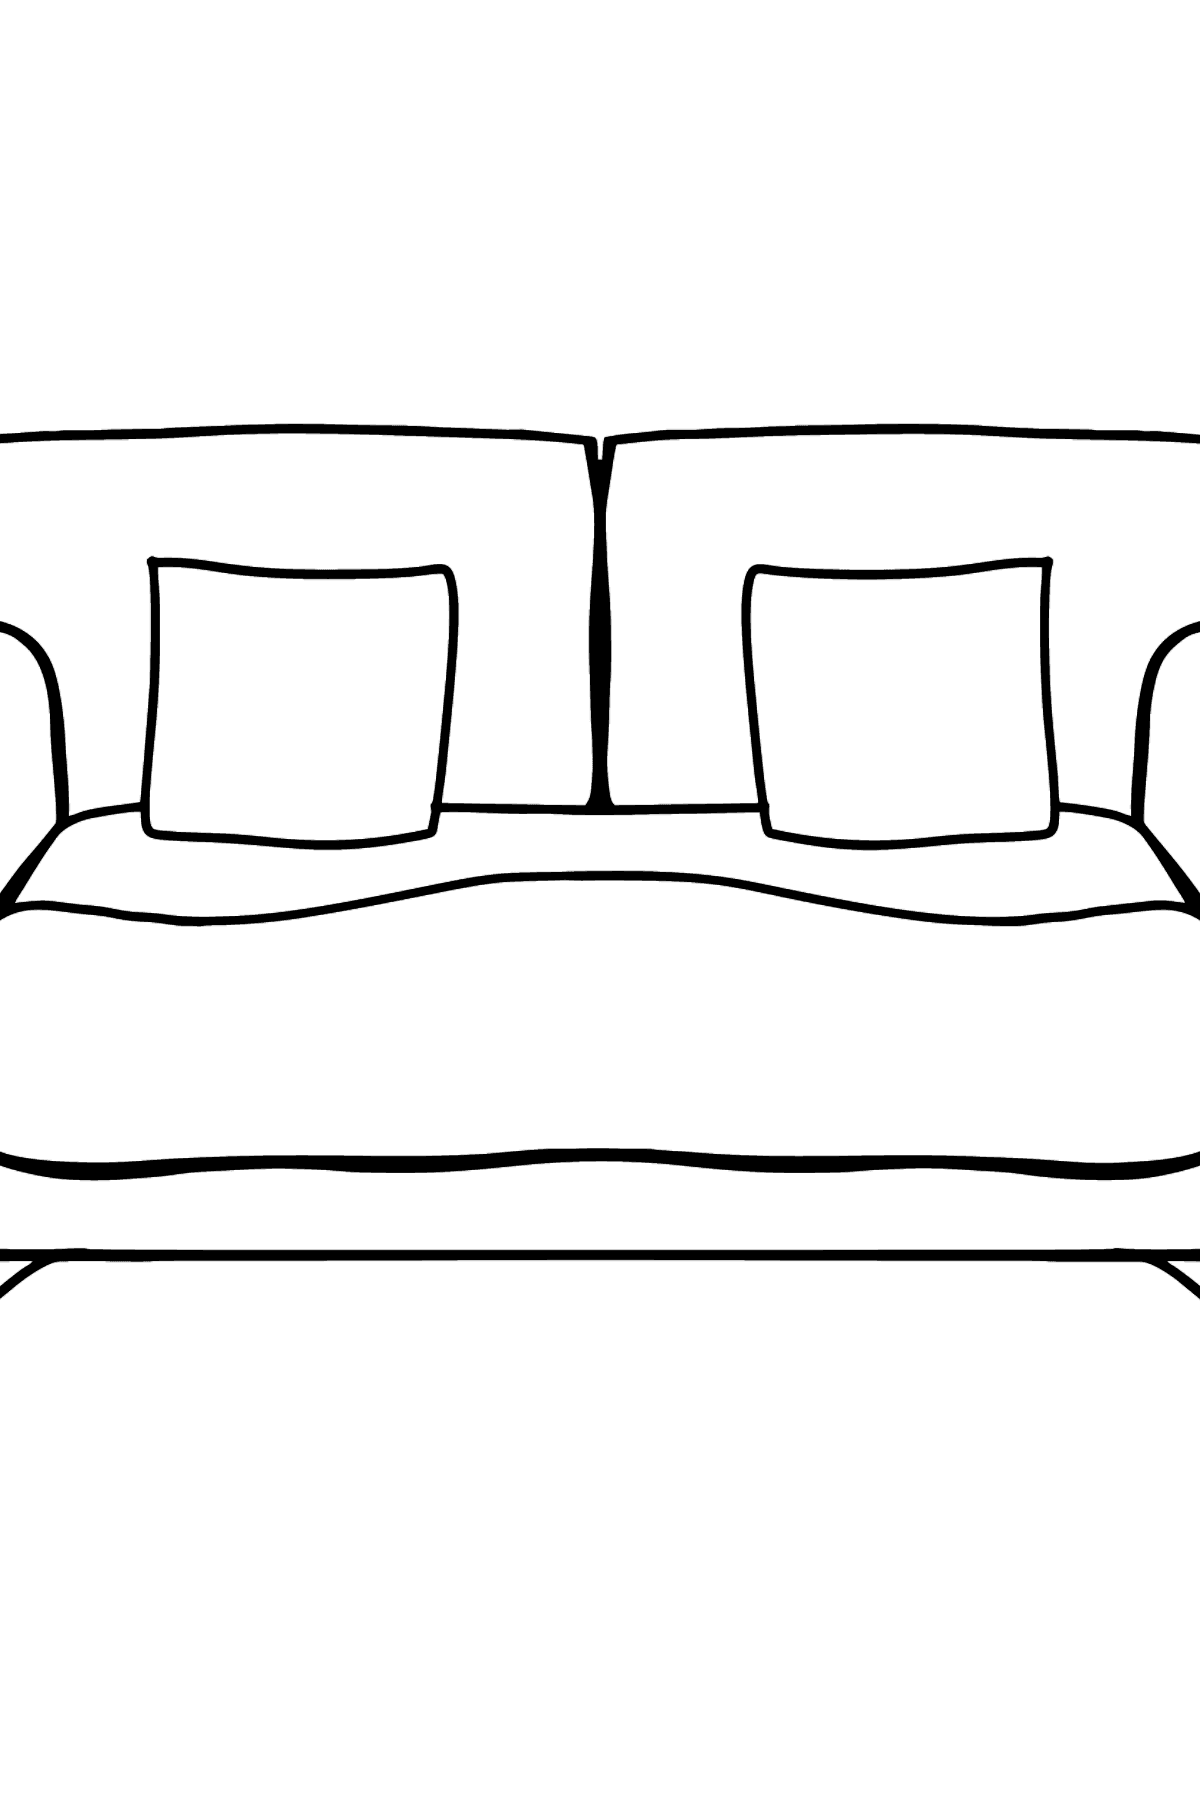 Sofa coloring page - Coloring Pages for Kids